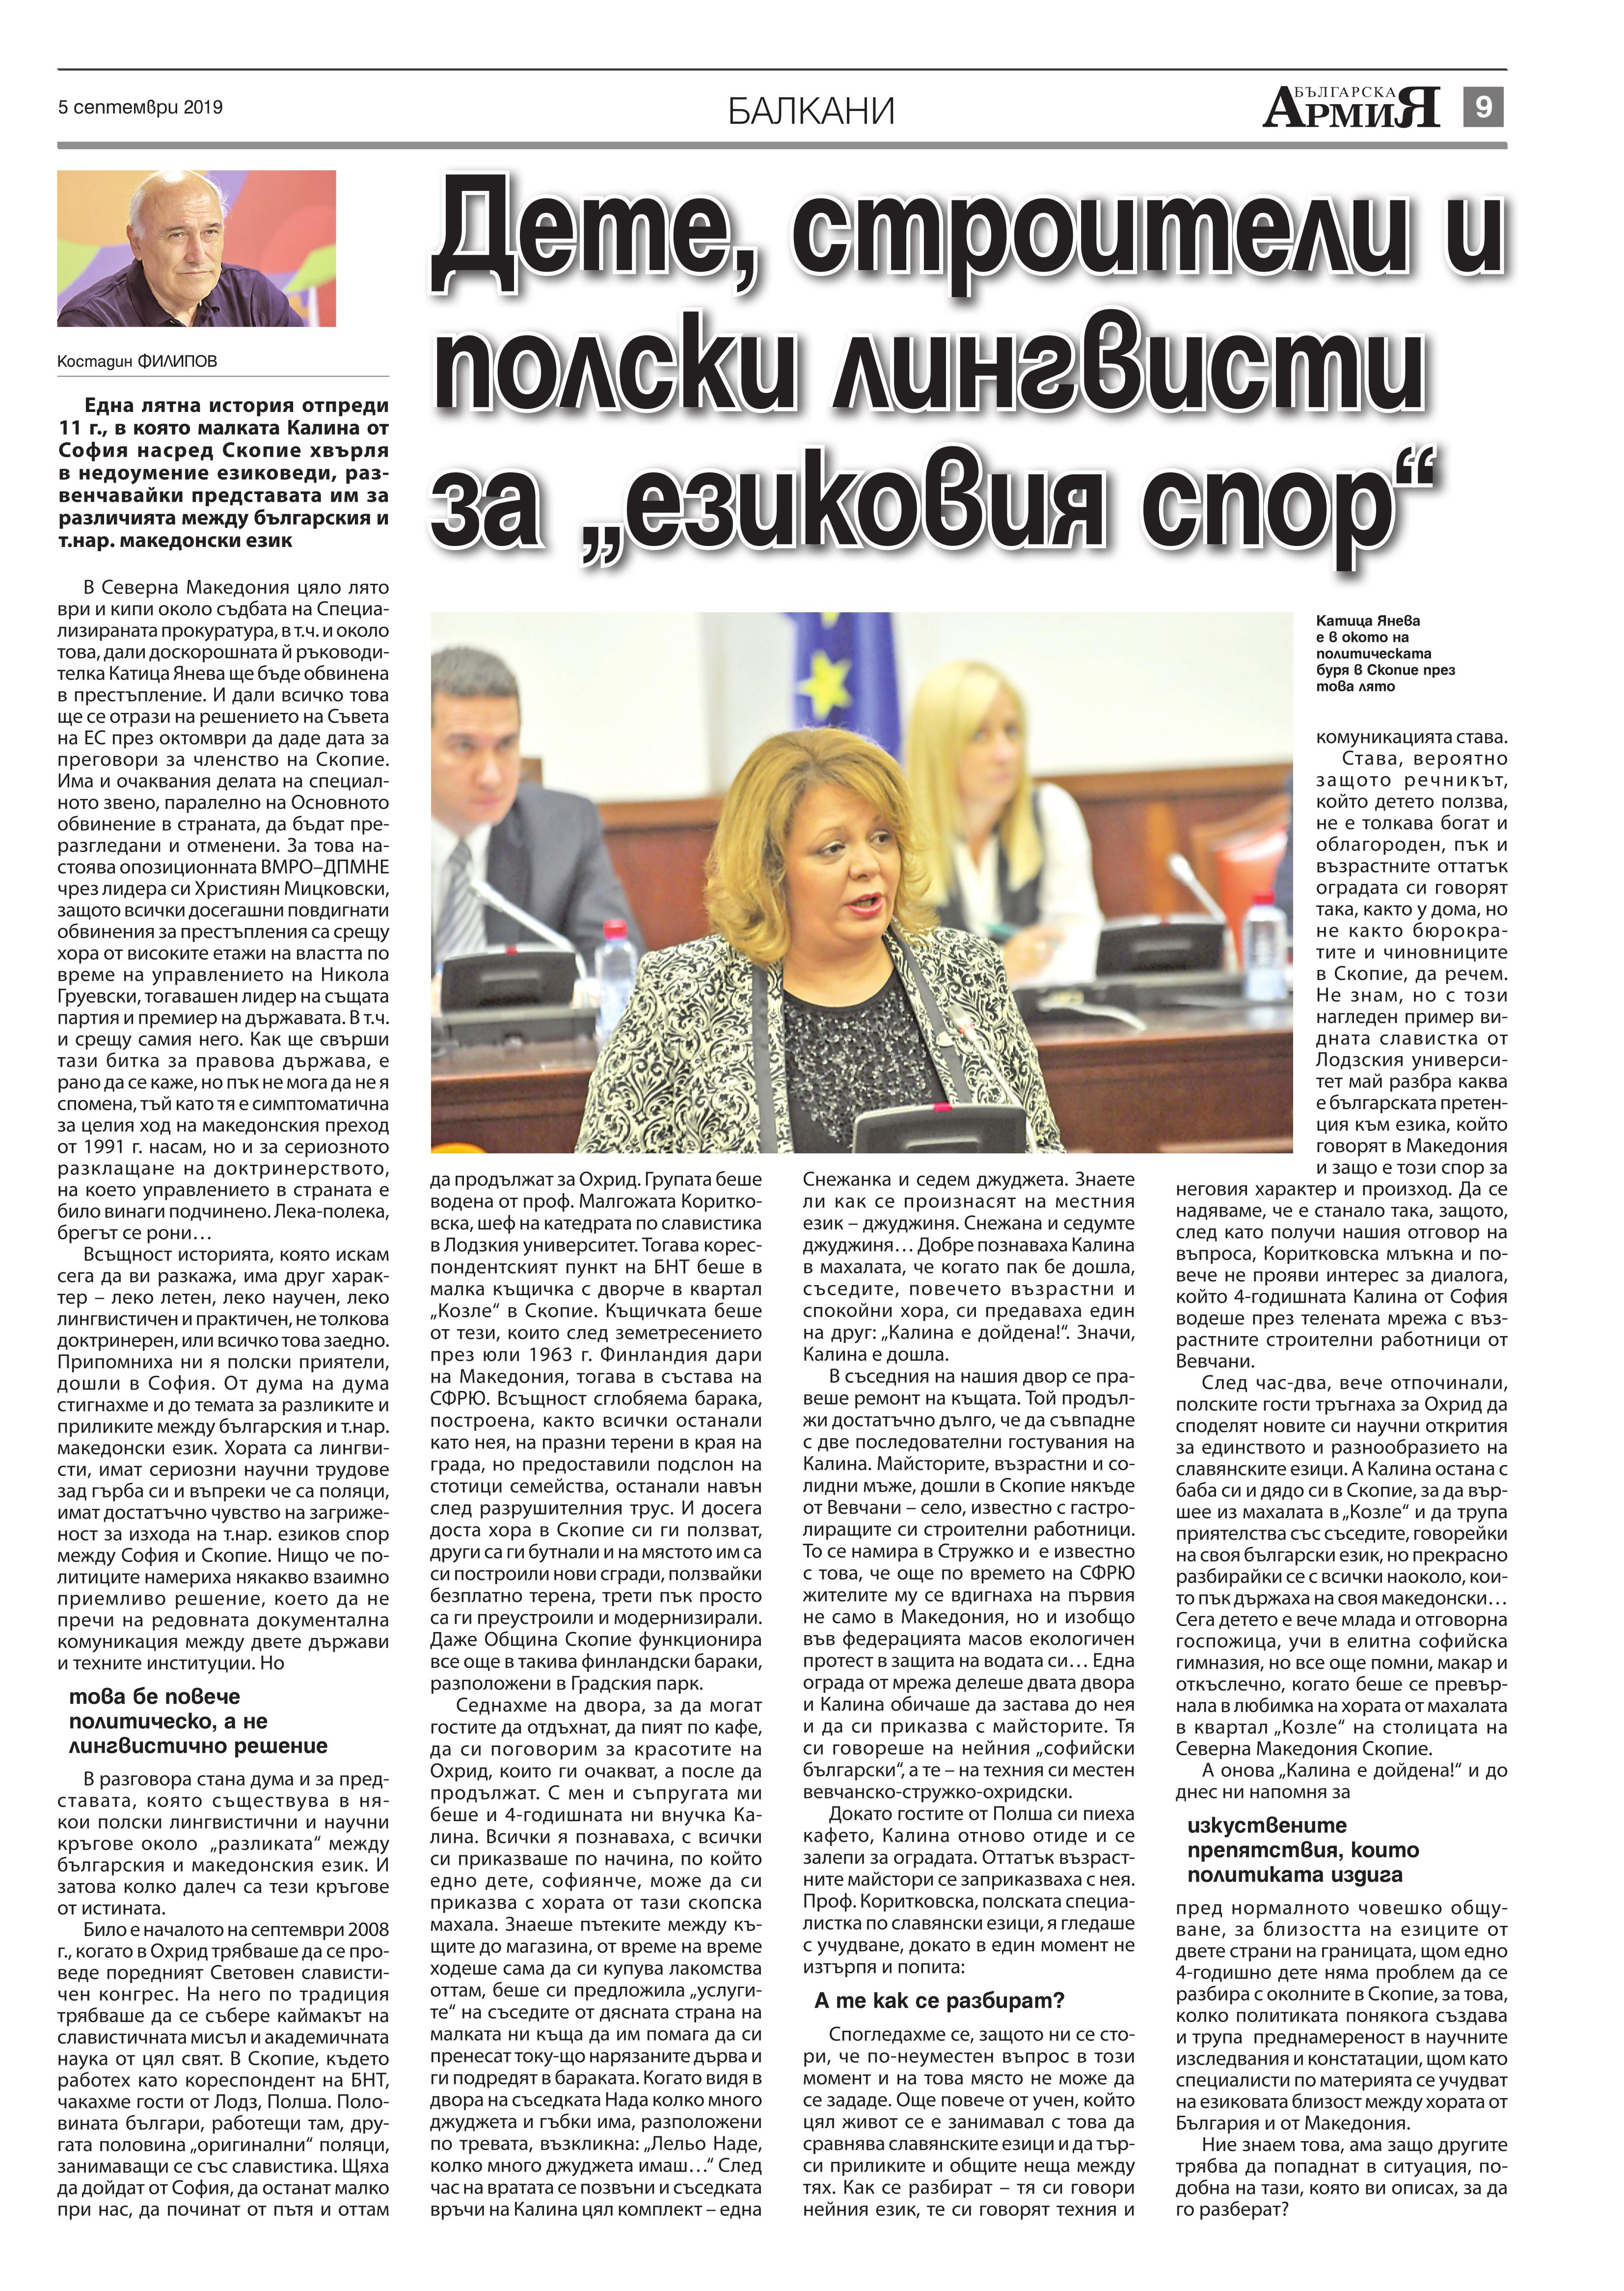 https://armymedia.bg/wp-content/uploads/2015/06/09.page1_-106.jpg